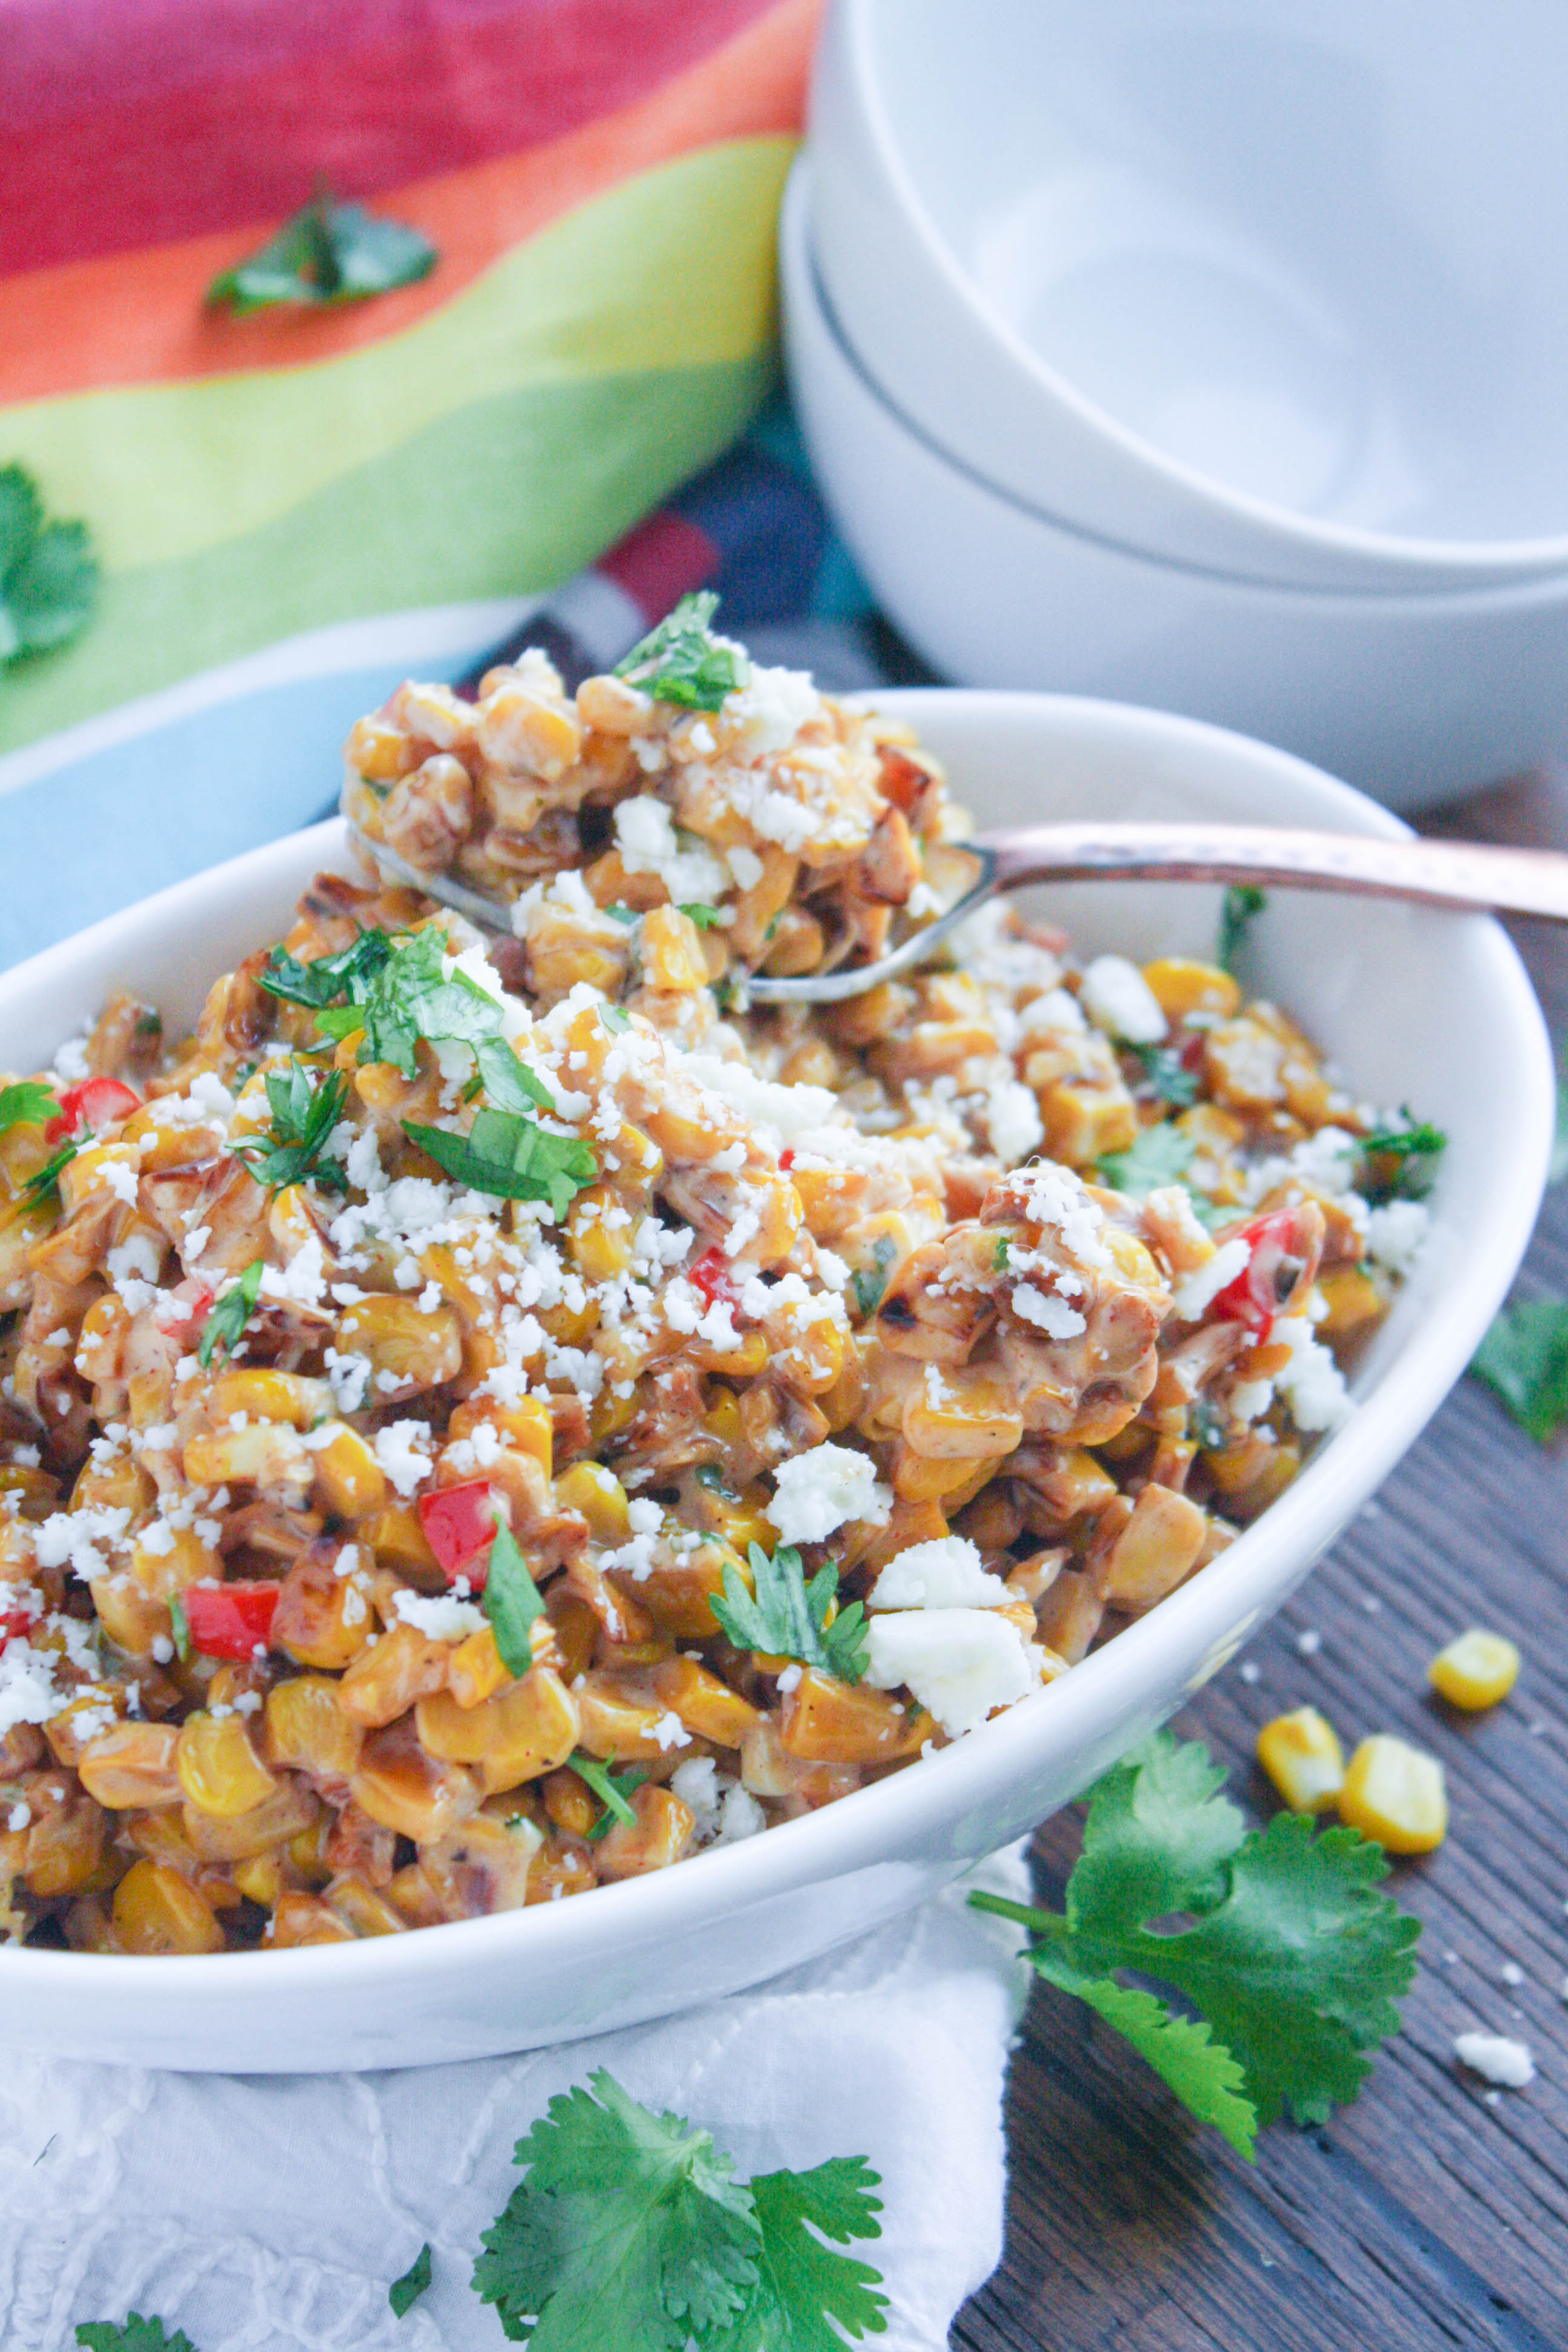 Mexican Street Corn Salad is a fun side for the summer. The flavors are fabulous!